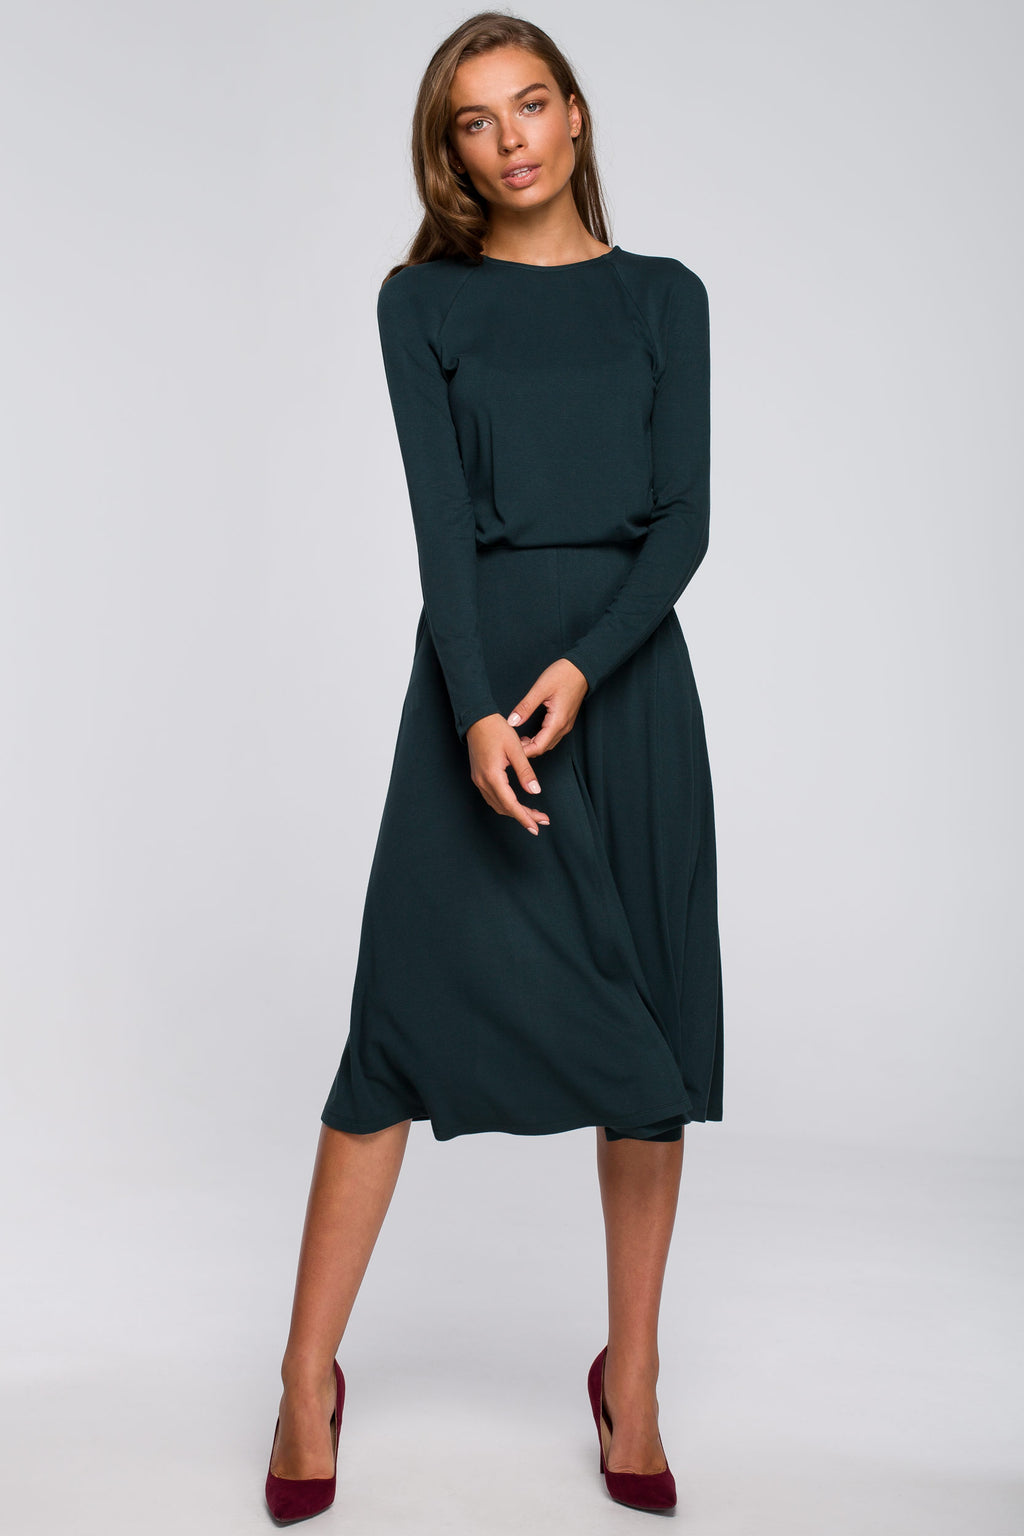 Green Viscose Midi Flare Dress With Front Split - So Chic Boutique